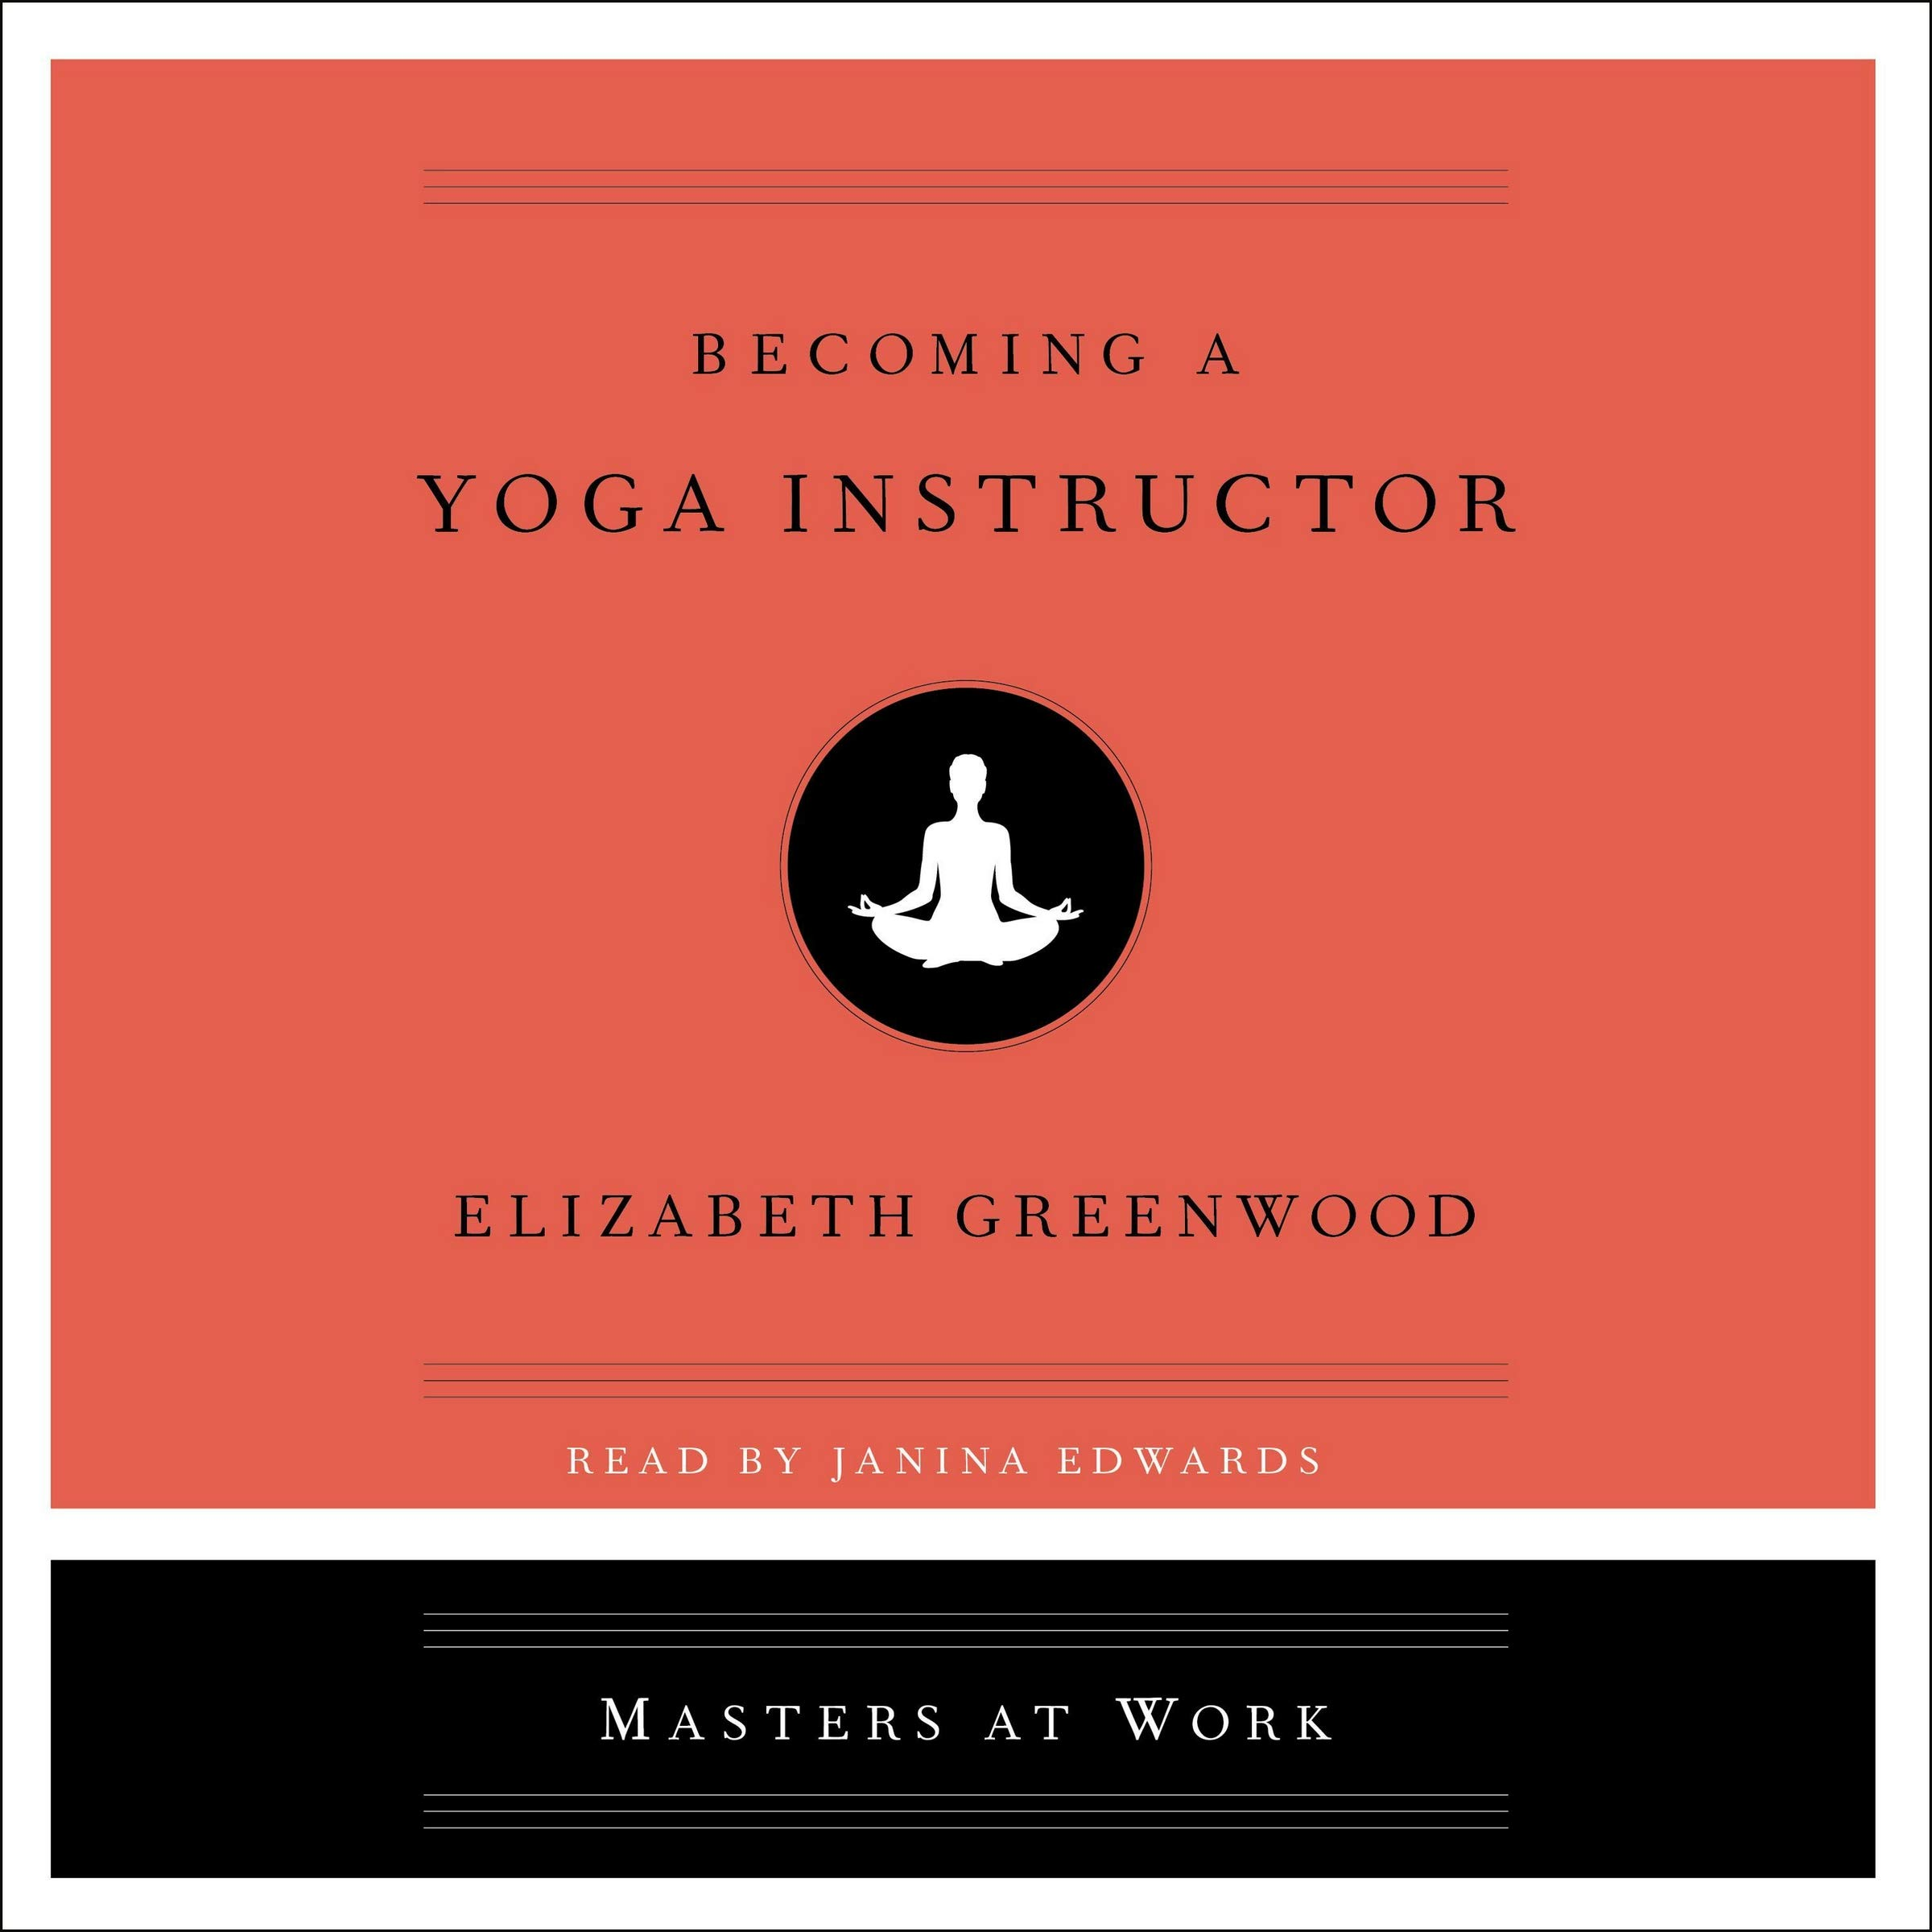 Amazon.com: Becoming a Yoga Instructor: The Masters at Work ...